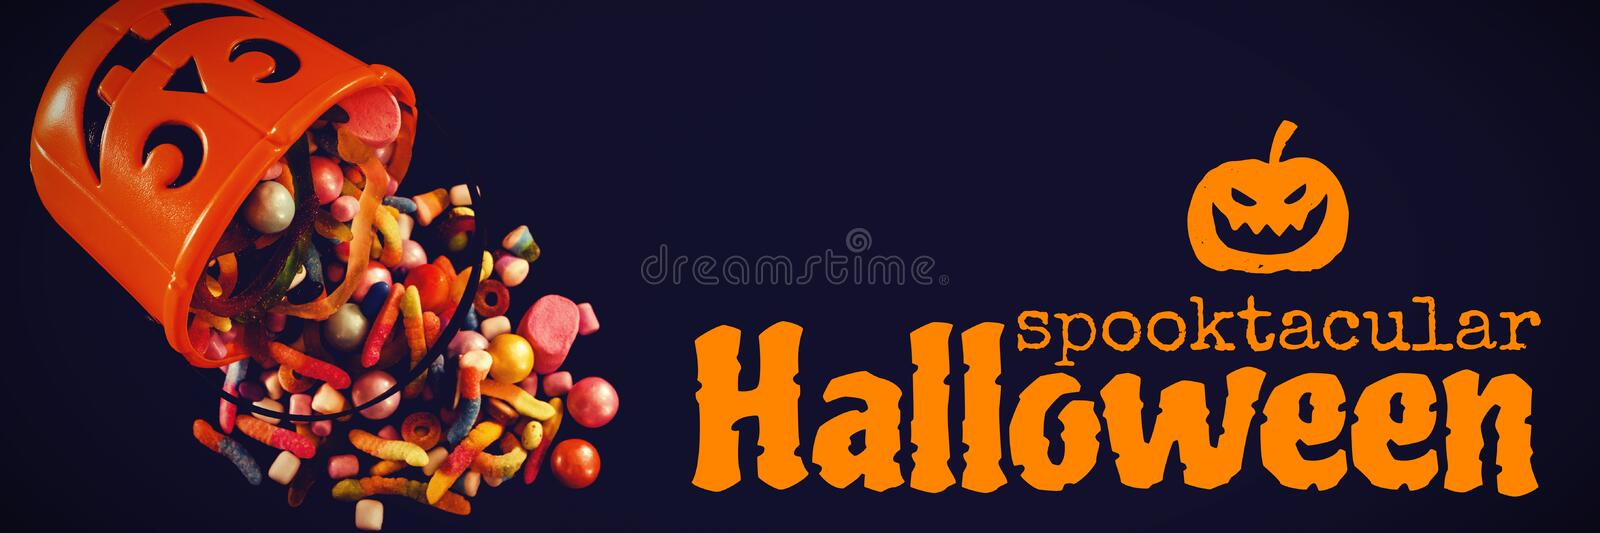 Composite image of graphic image of spooktacular halloween text. Graphic image of spooktacular Halloween text against bucket with various sweet food over black stock images